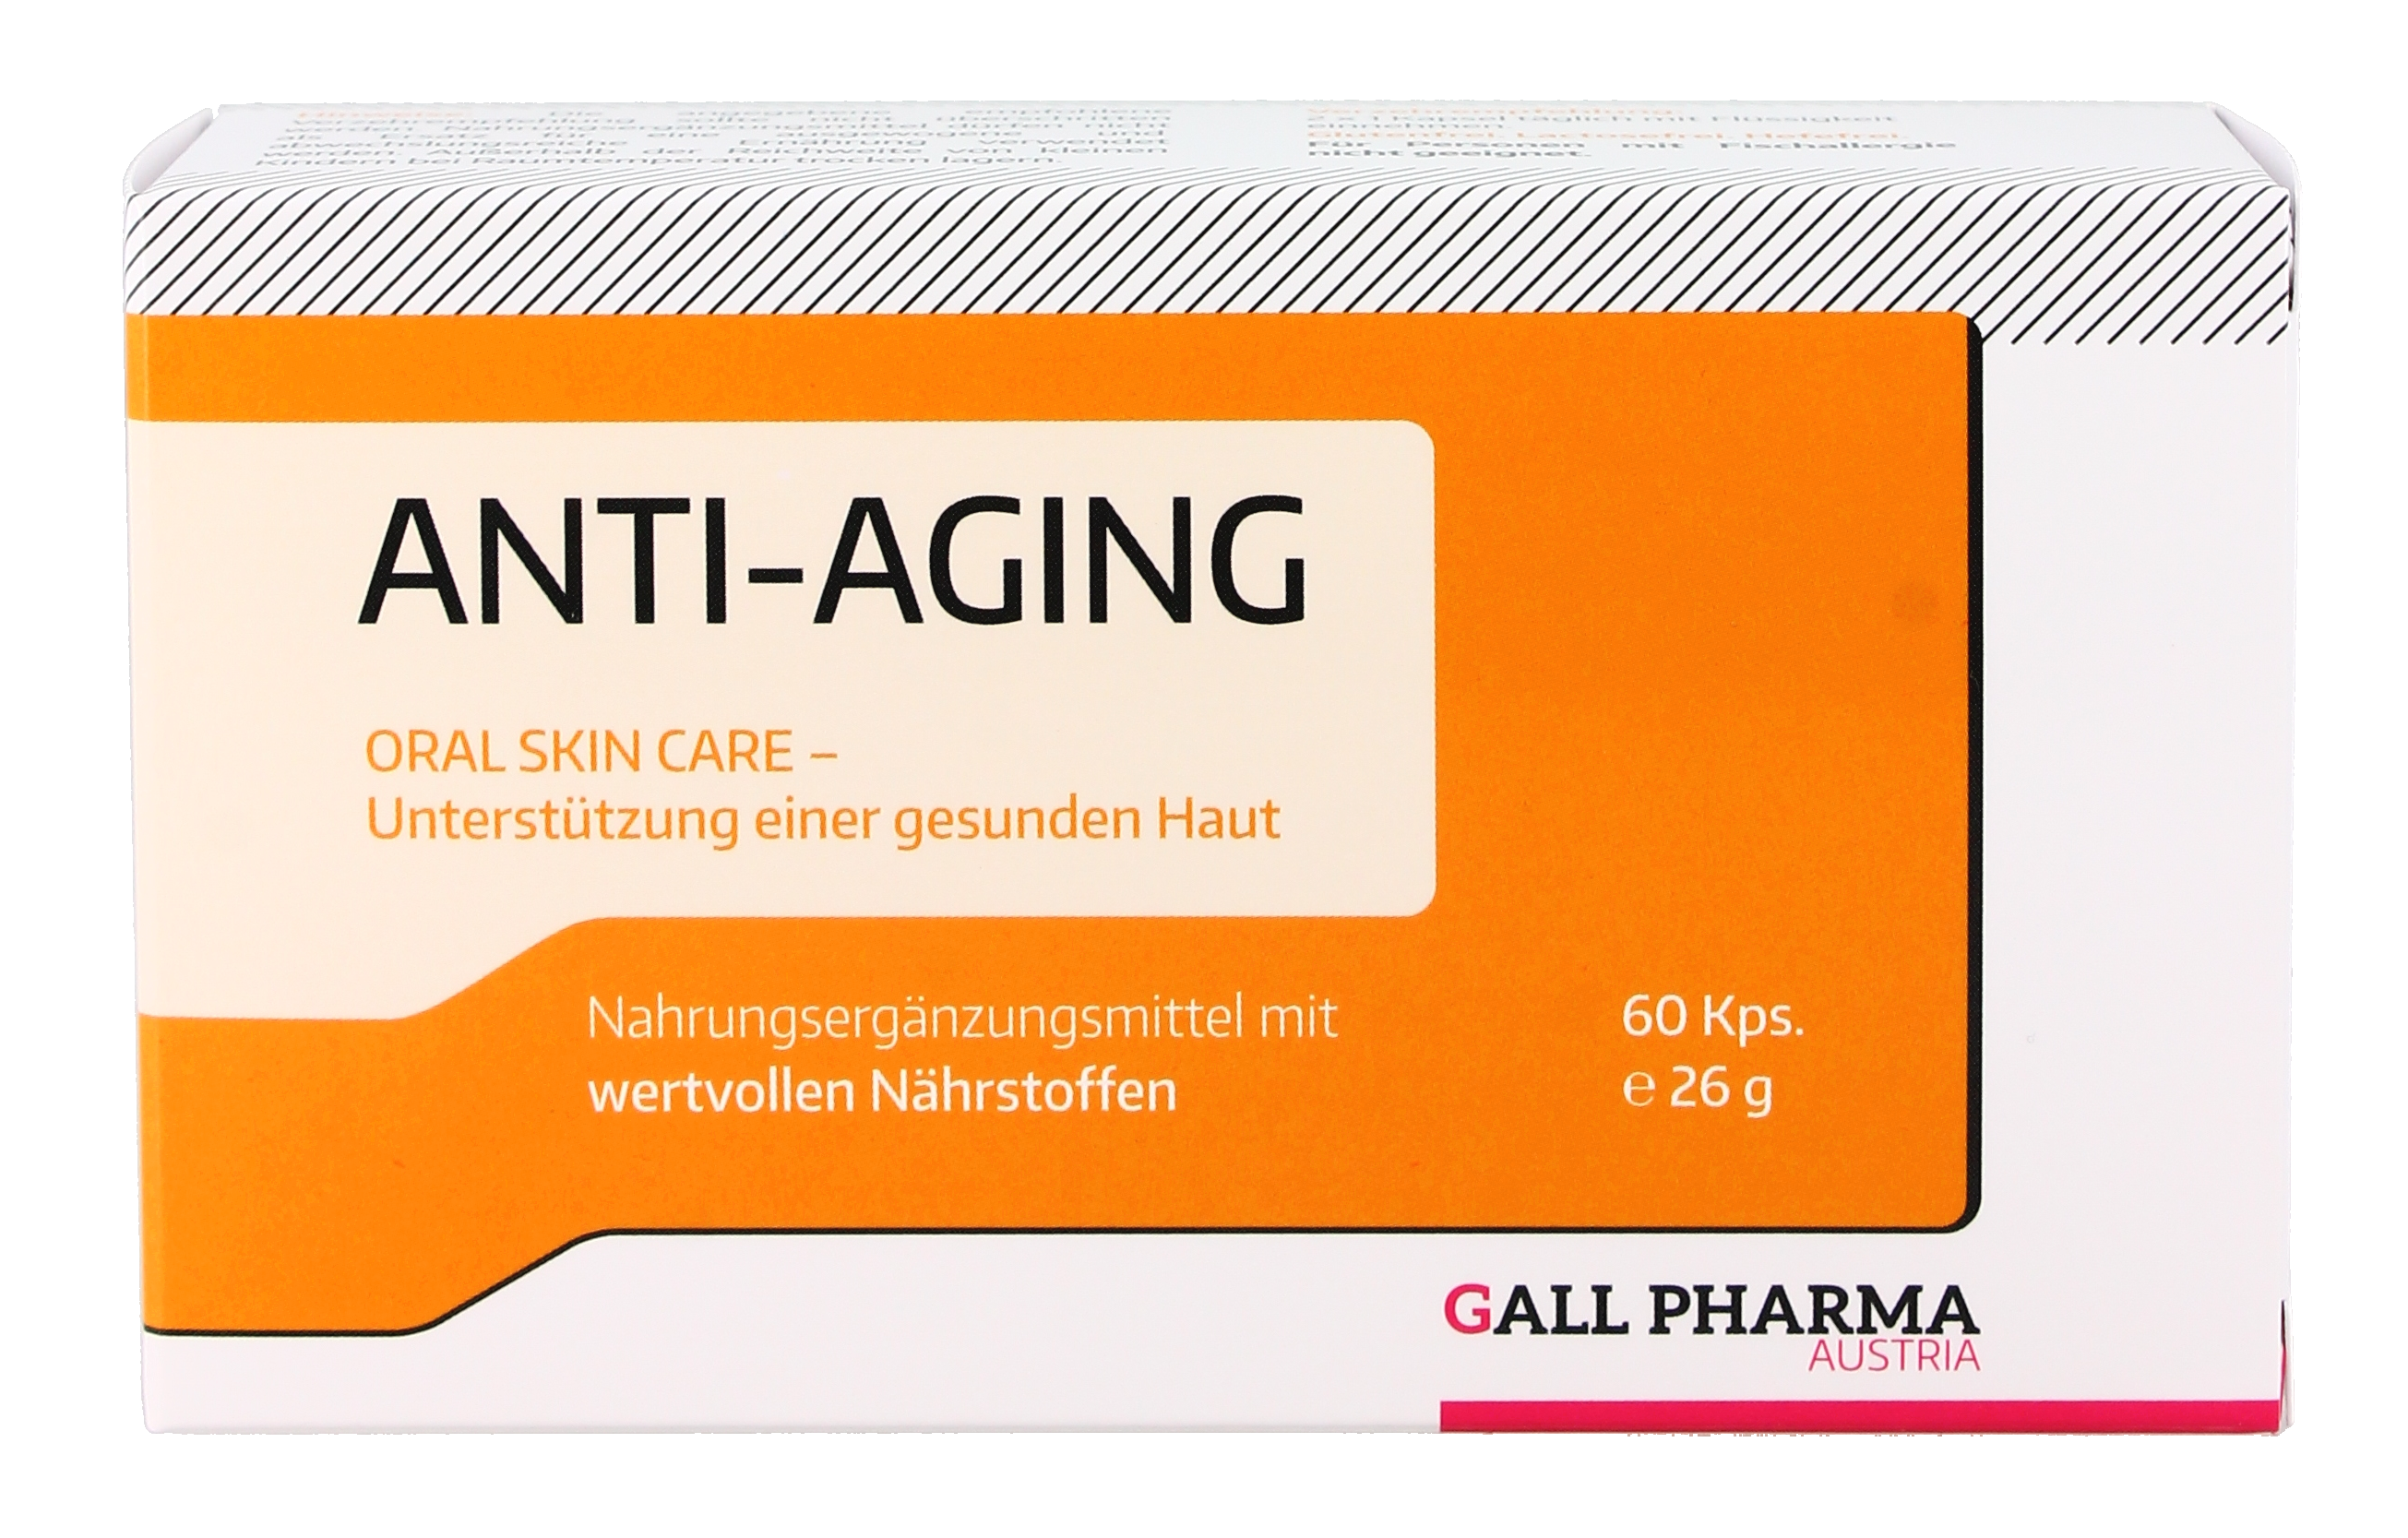 Anti-Aging GPH Kapseln – Oral Skin Care